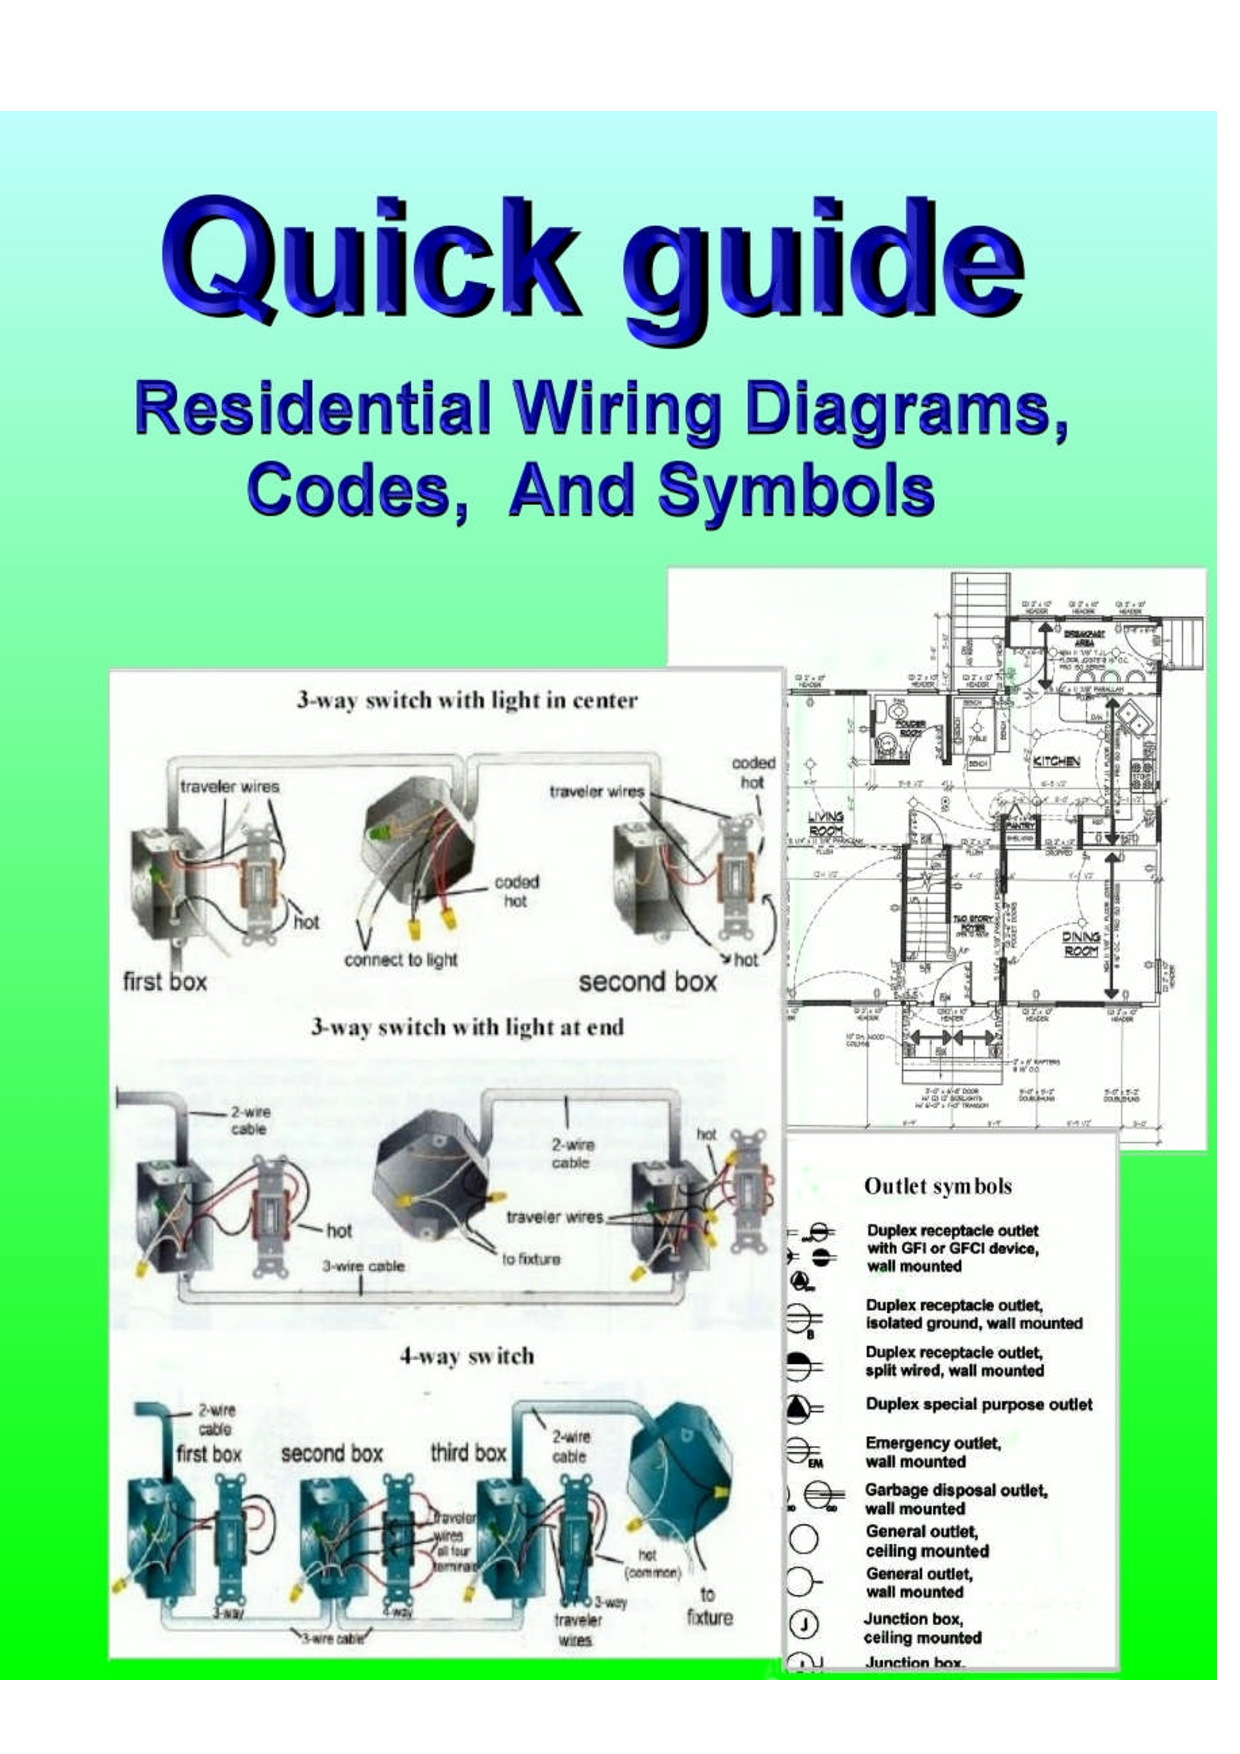 c3f403d8f667f3f3dbd14336f6c29d3e home electrical wiring diagrams pdf download legal documents 39 home electrical wiring diagrams pdf at gsmx.co